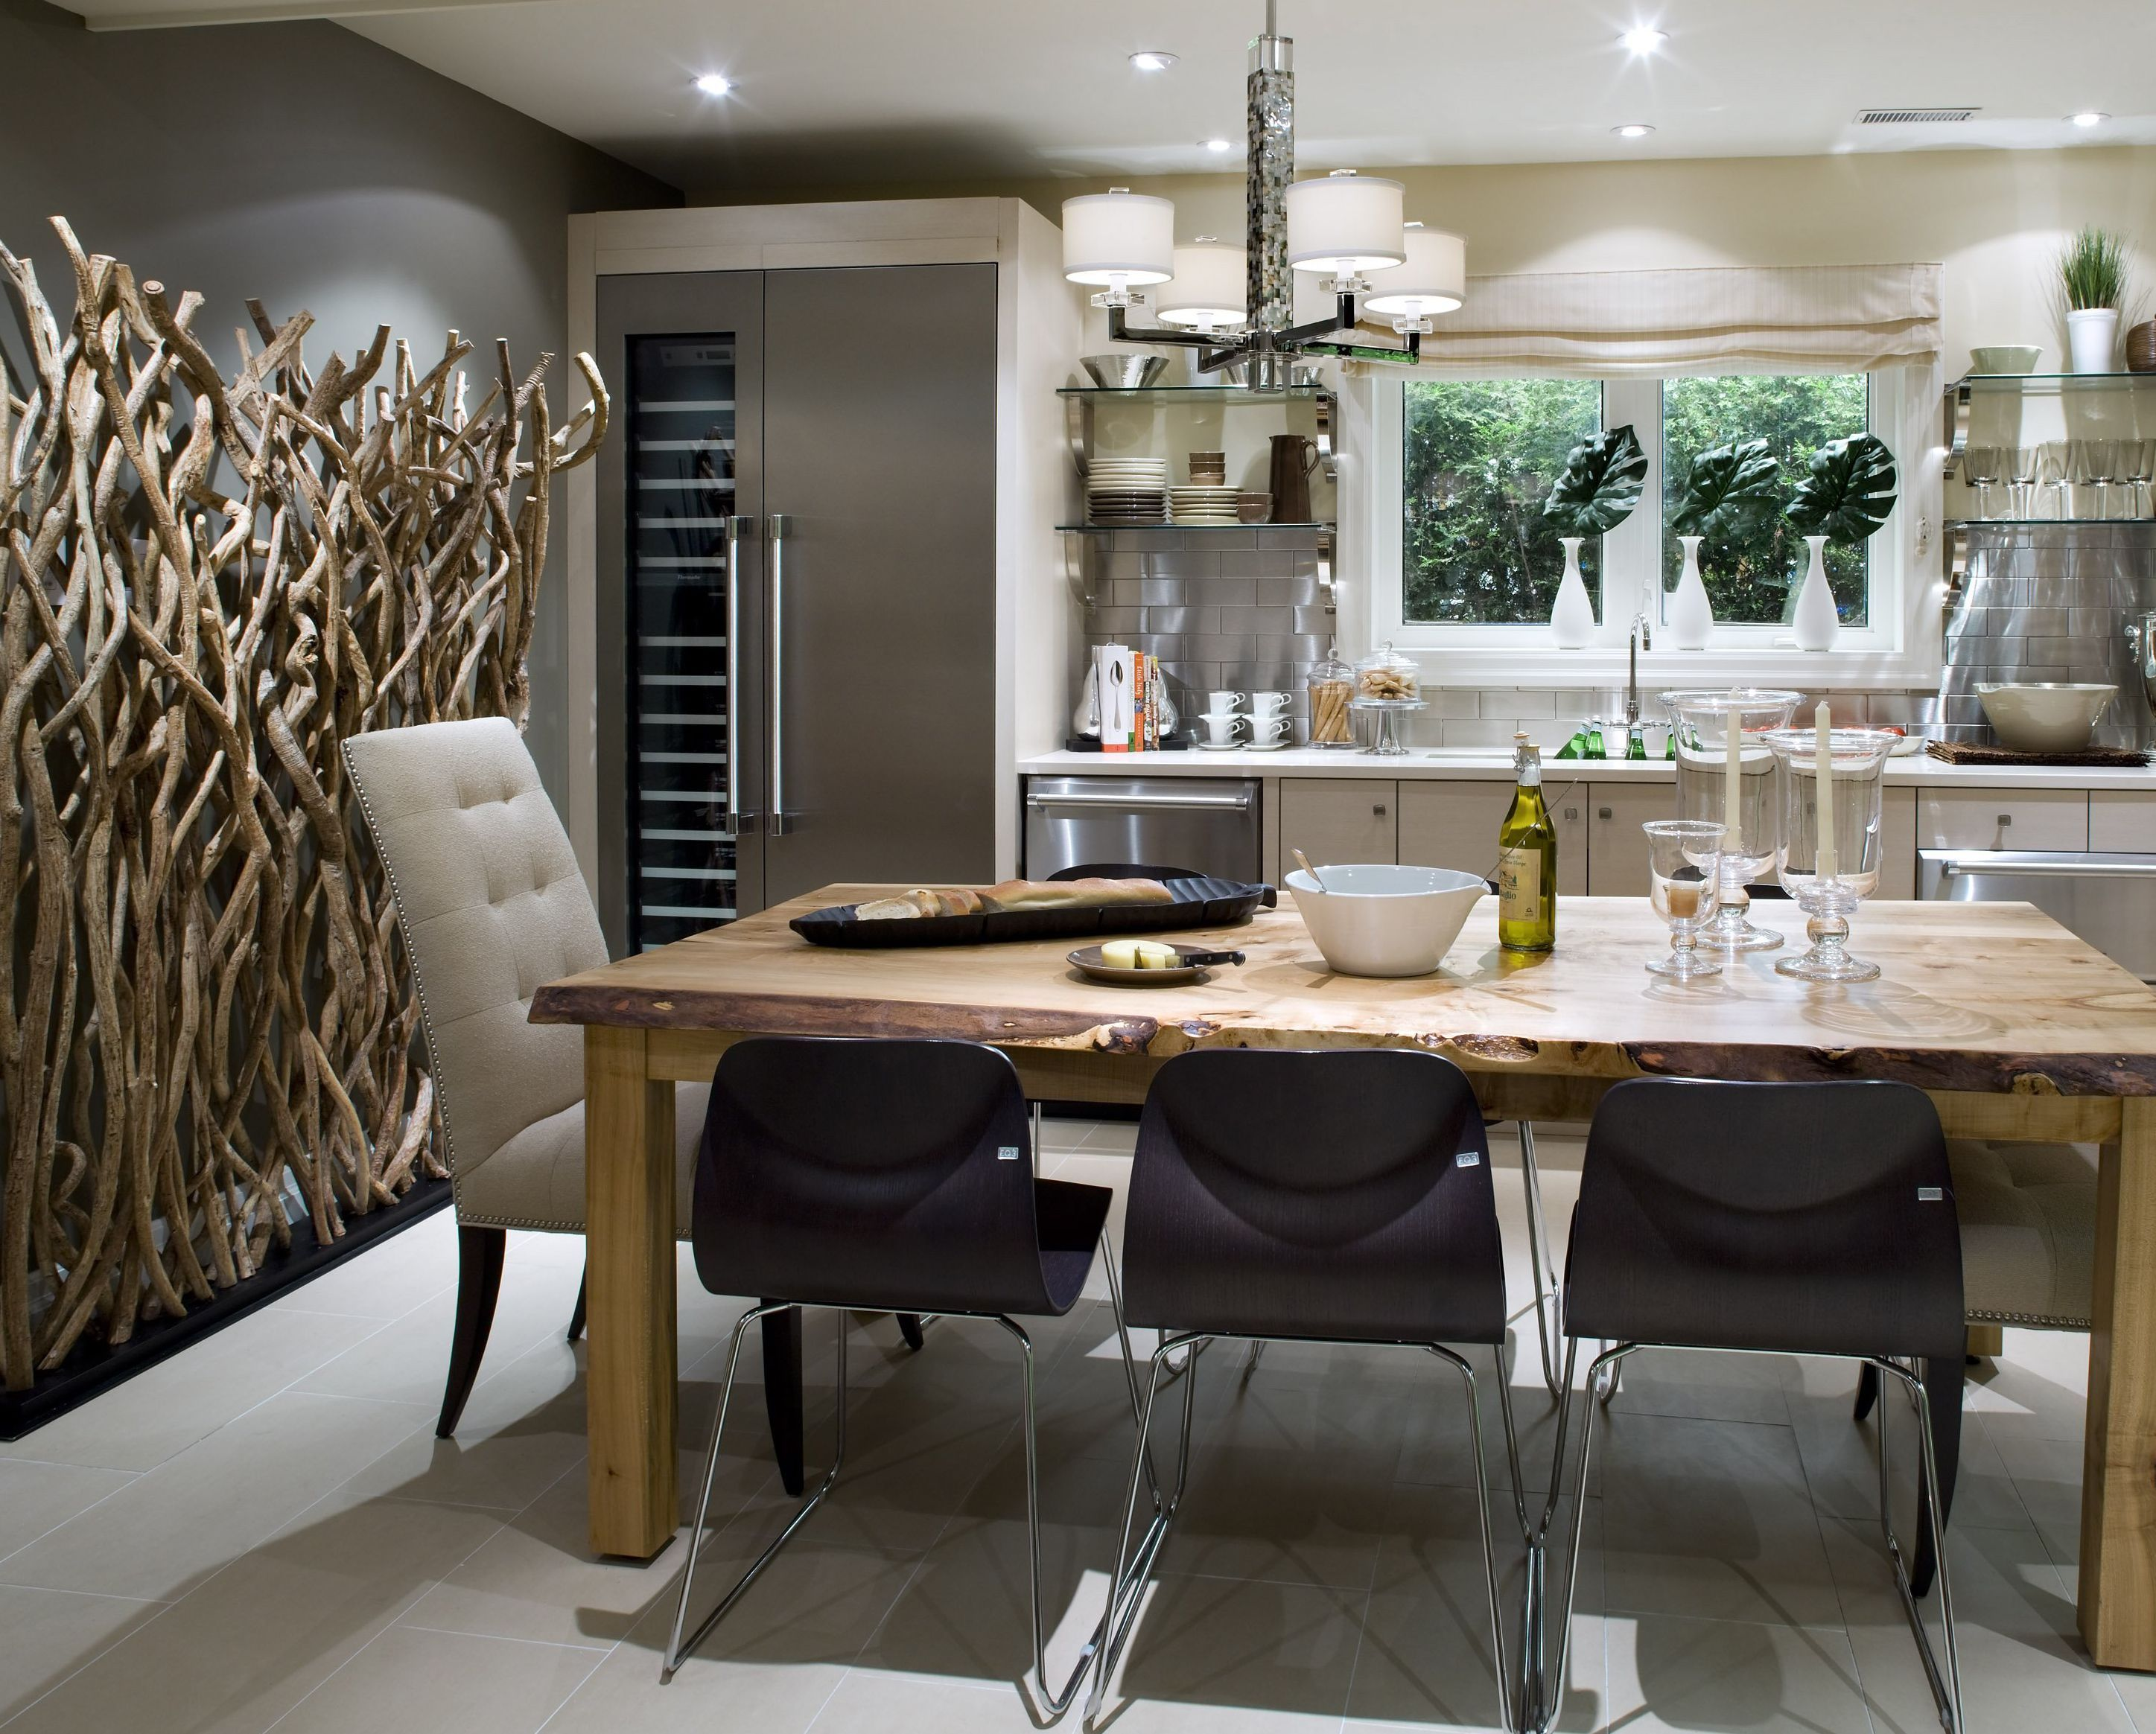 Candice Olson Of HGTVs Divine Design Contrasts Order And Chaos With Her Pile Sticks Decoration In Thedining Room